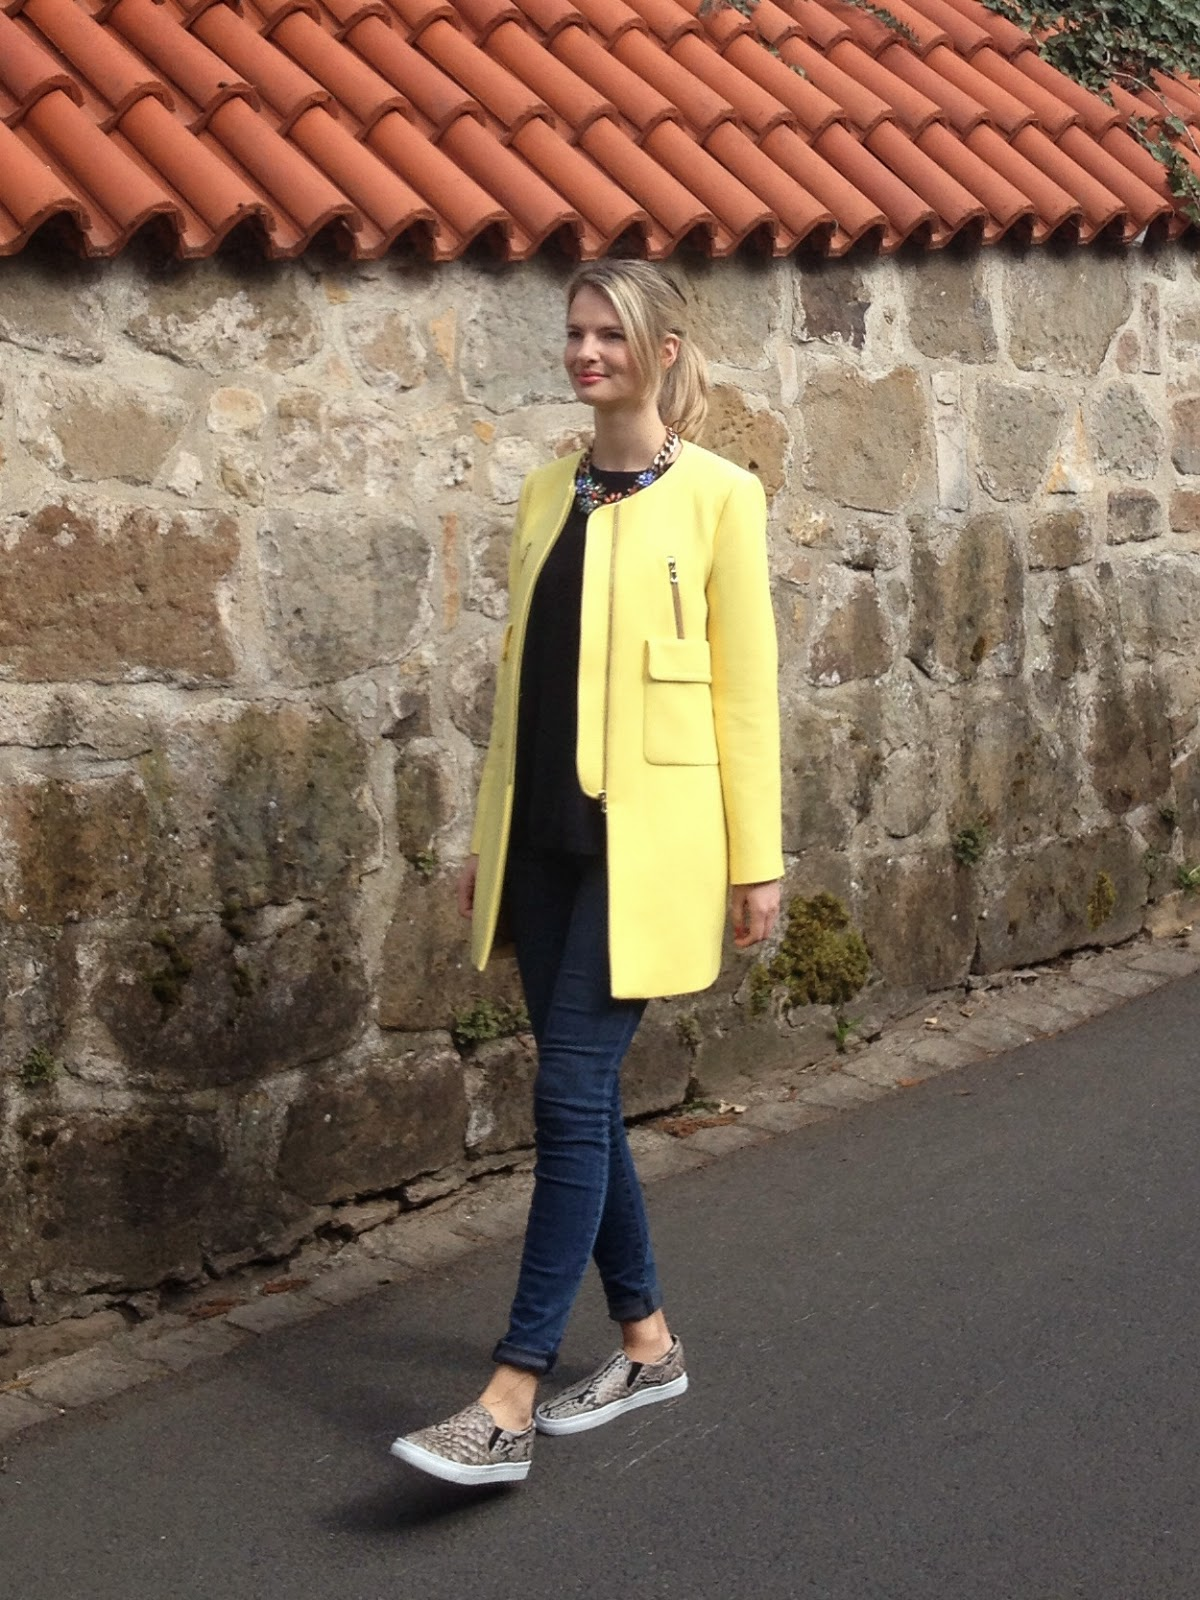 zara coat, zara yellow coat with pockets, yellow coat, 60s inspired coat, street style, german blogger, j brand, j brand photo ready, j brand jeans, zara flower necklace, blonde blogger, hm slip ons, hm slipons, slipons, snake print slipons, plimsolles